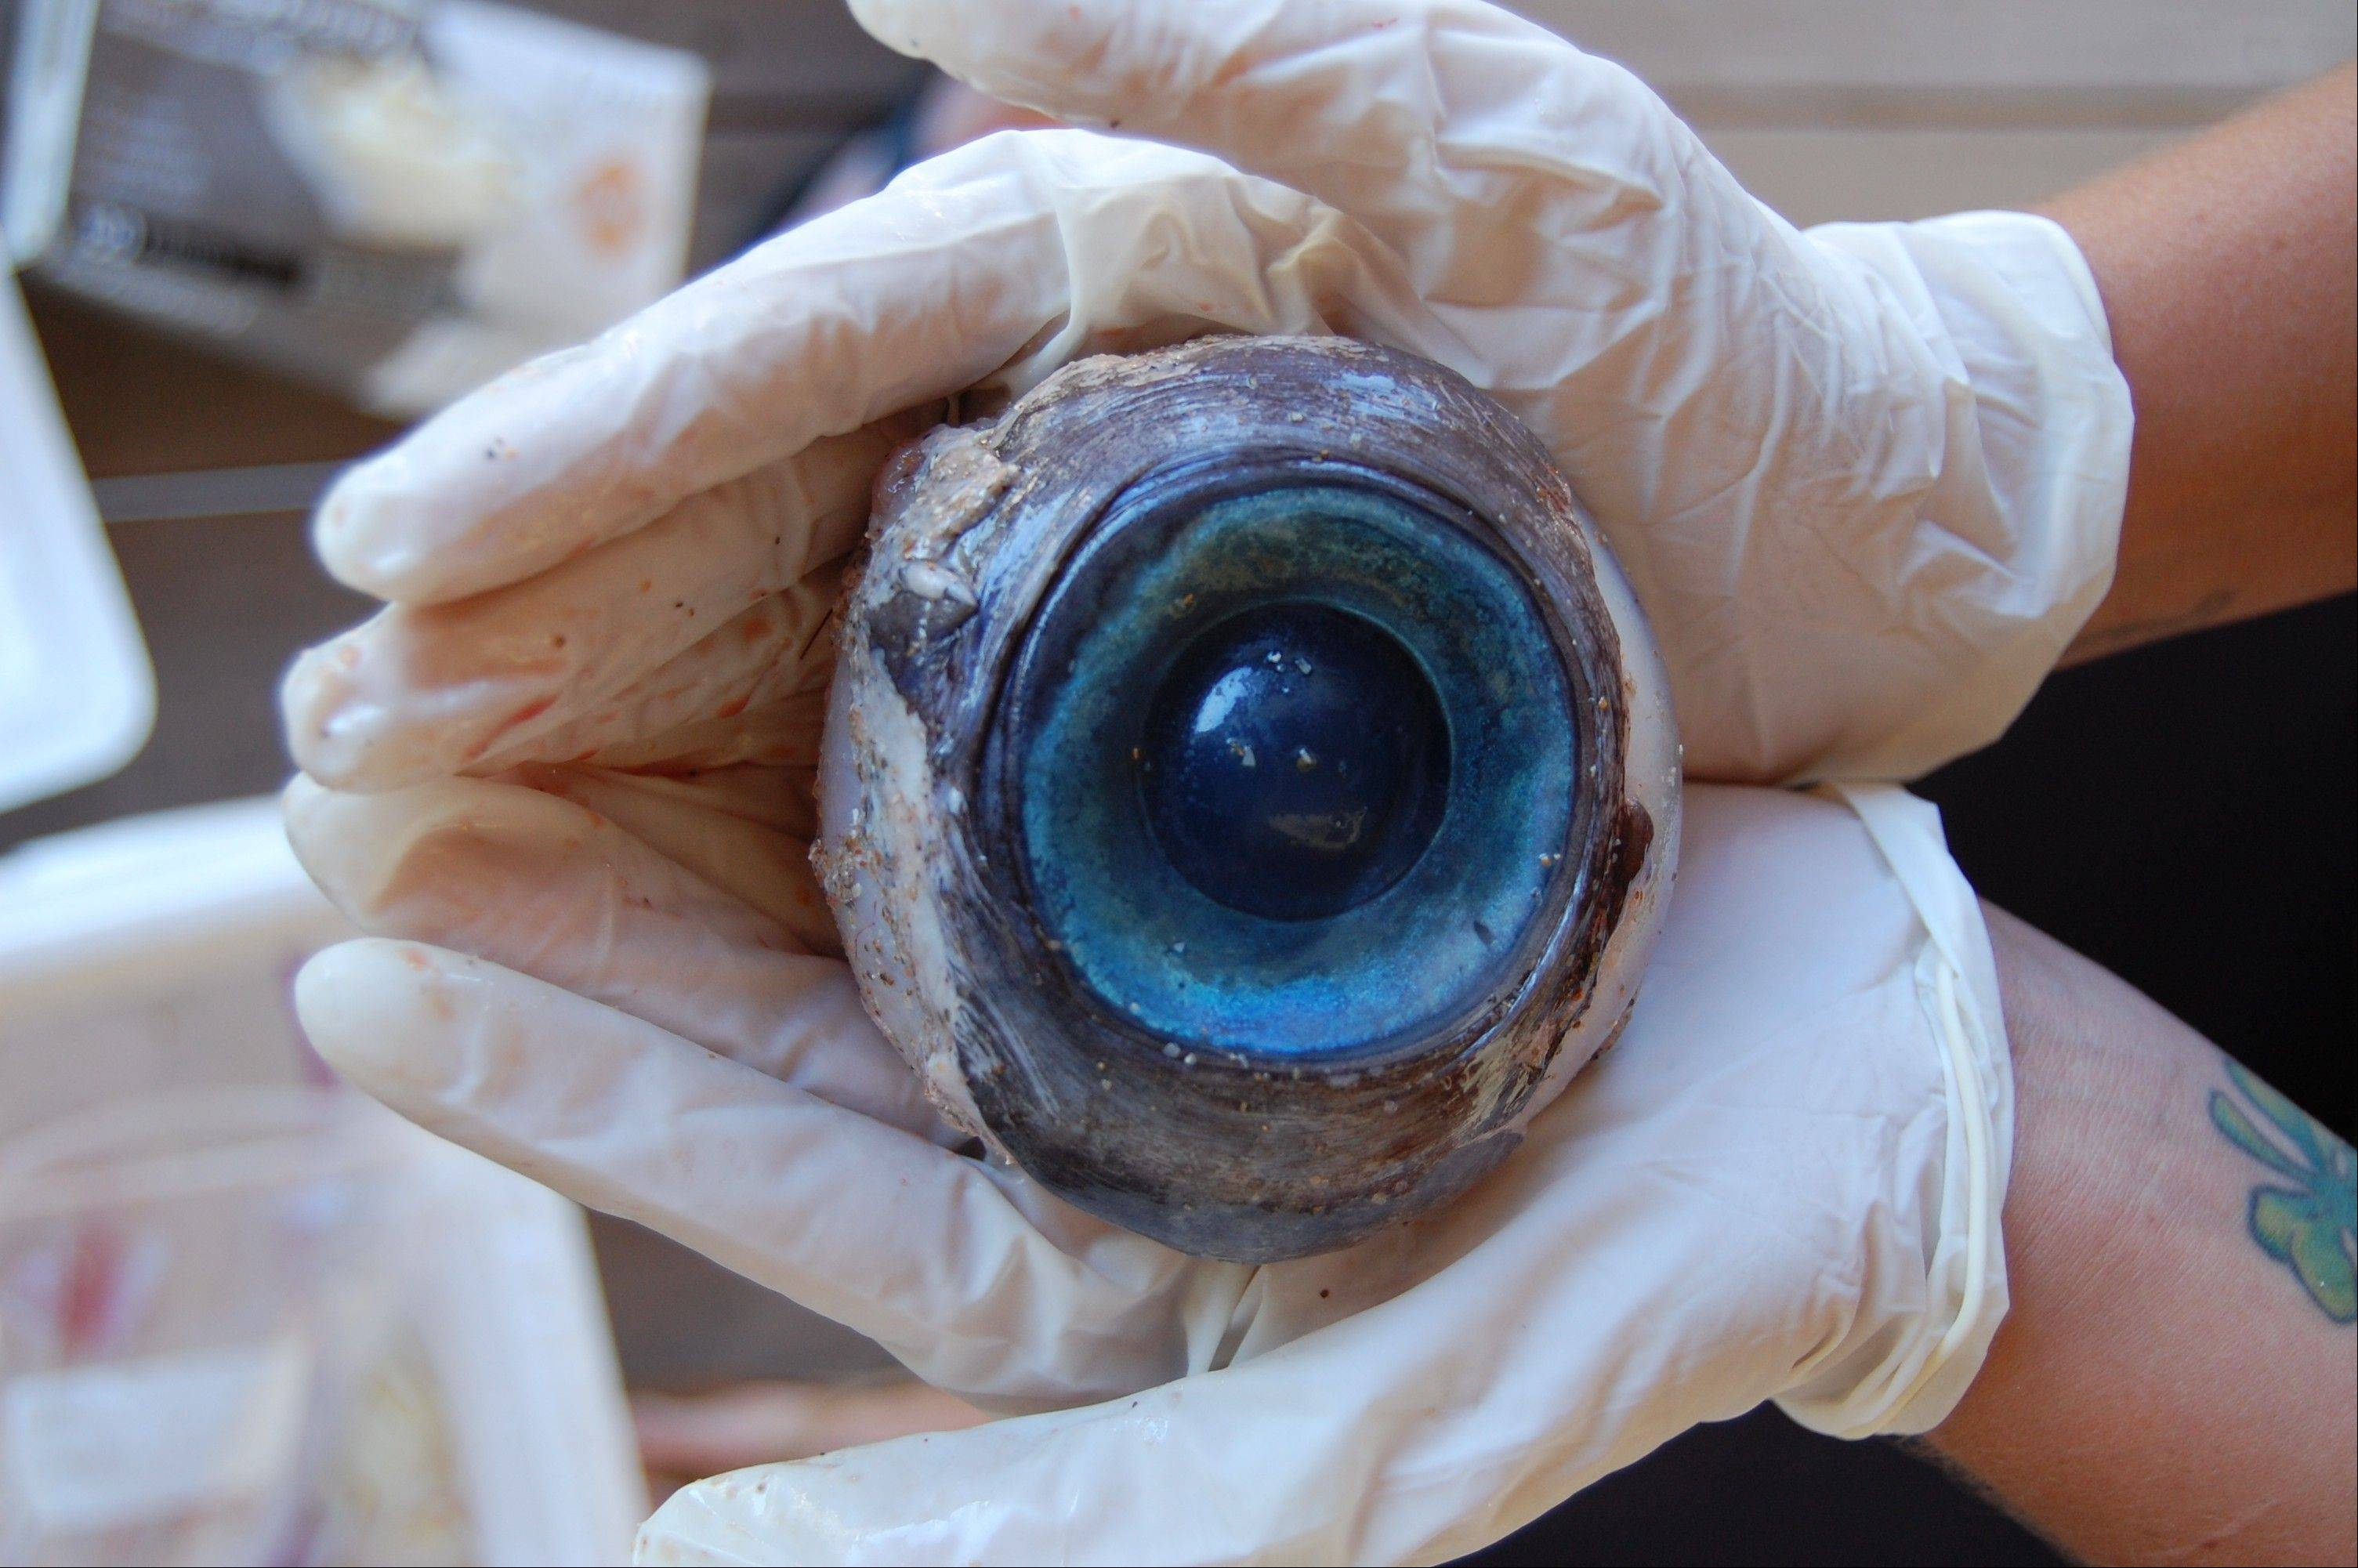 A giant eyeball that washed ashore and was found by a man walking the beach in Pompano Beach, Fla. on Wednesday likely came from a swordfish, experts say.